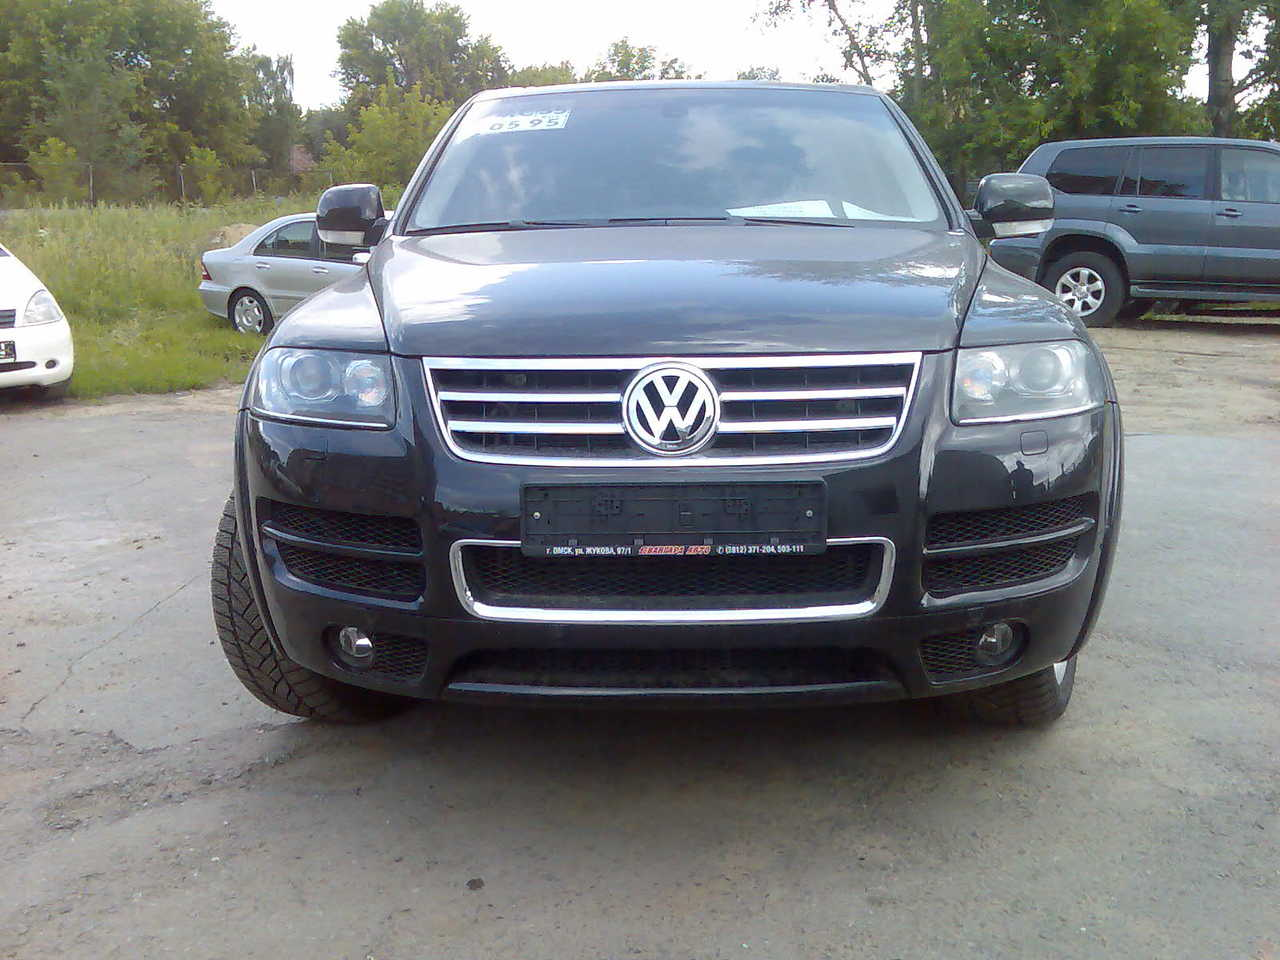 used 2006 volkswagen touareg photos 4200cc gasoline automatic for sale. Black Bedroom Furniture Sets. Home Design Ideas